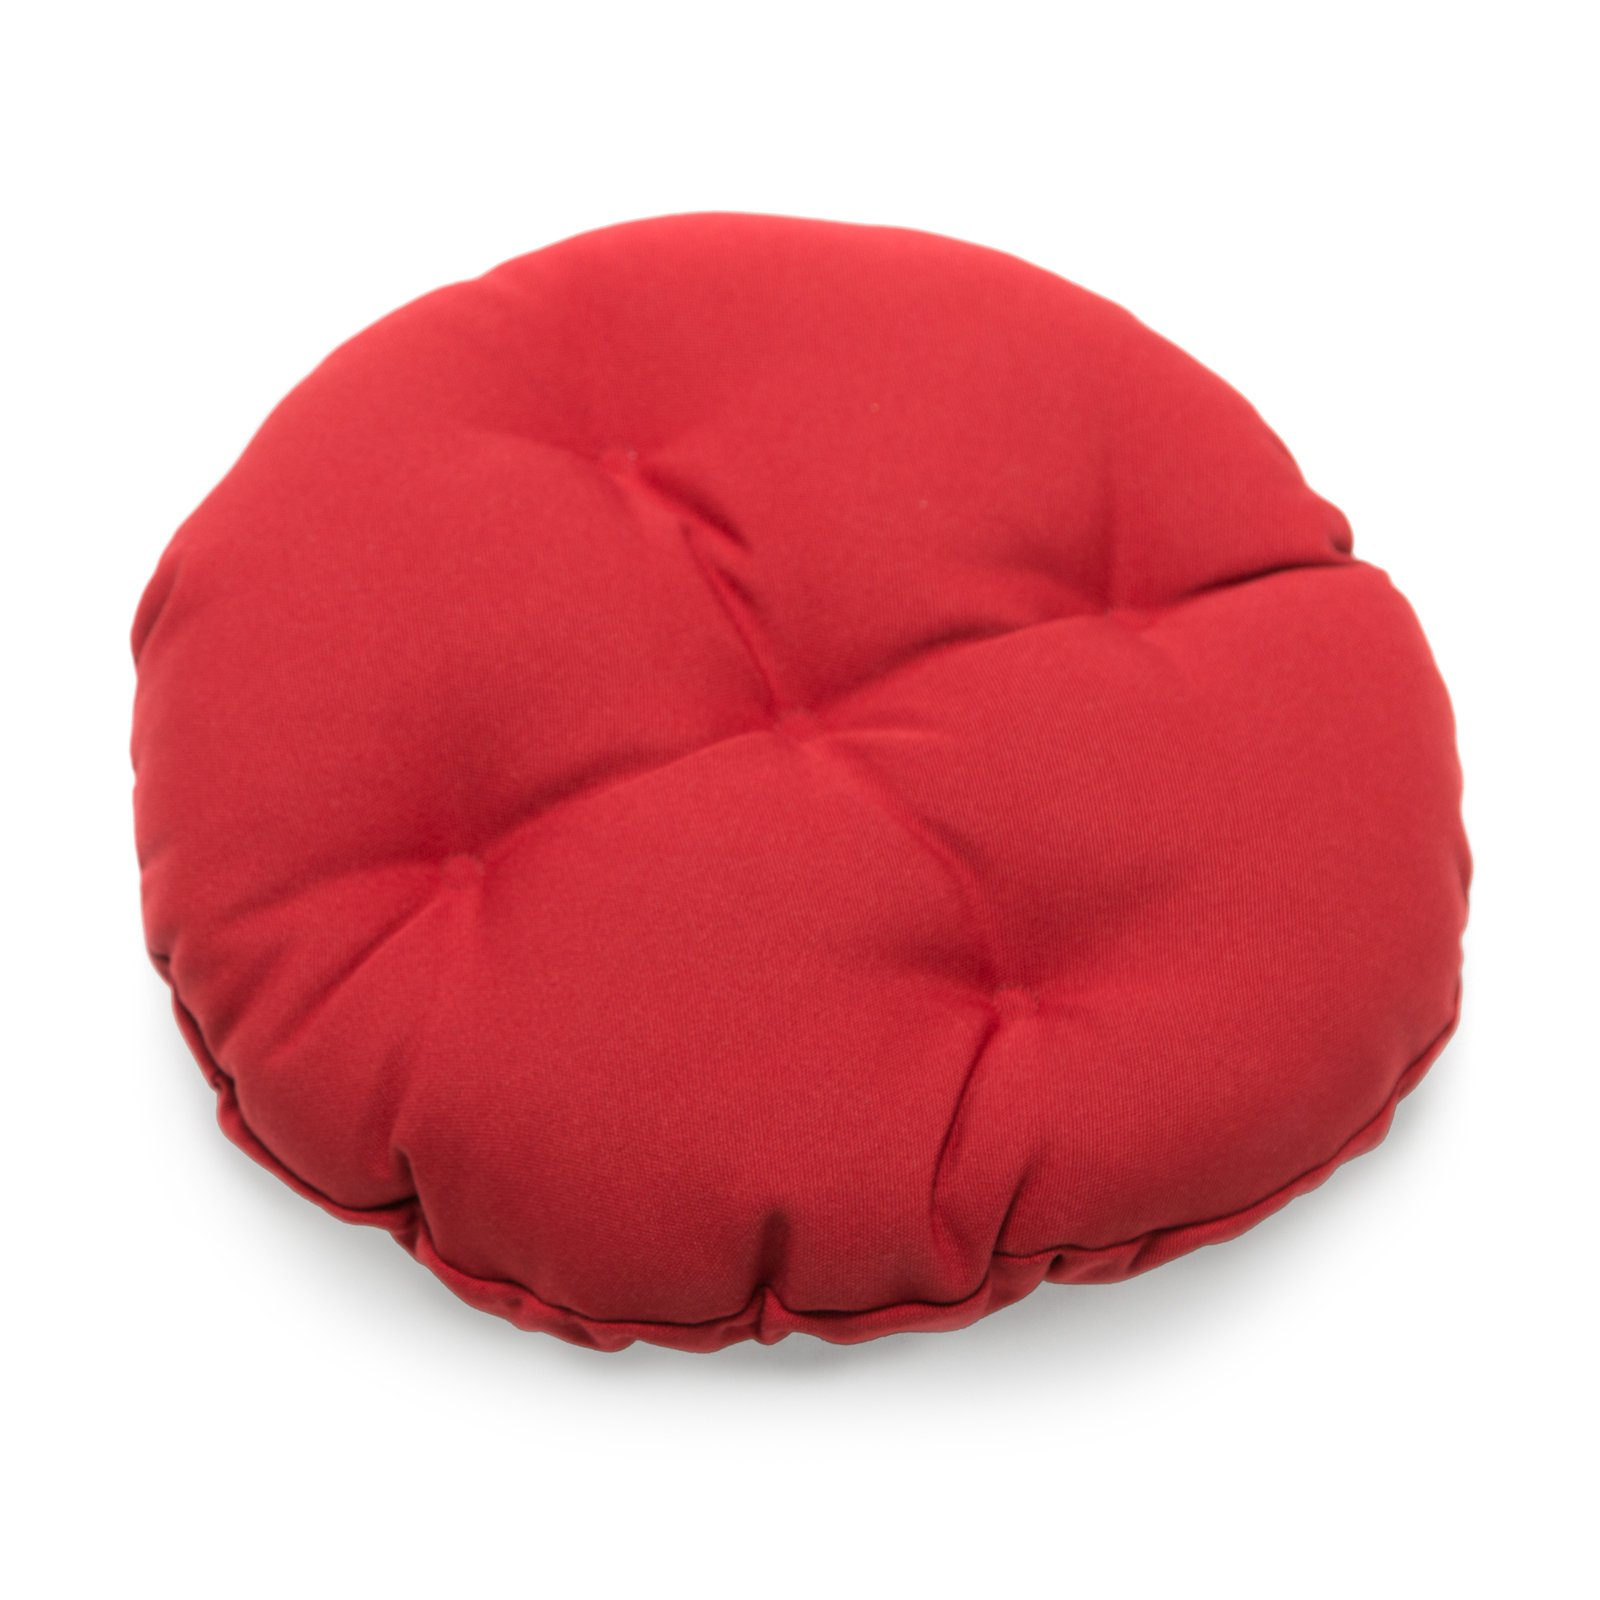 Deauville 13 in. Round Backless Bar Stool Seat Cushion